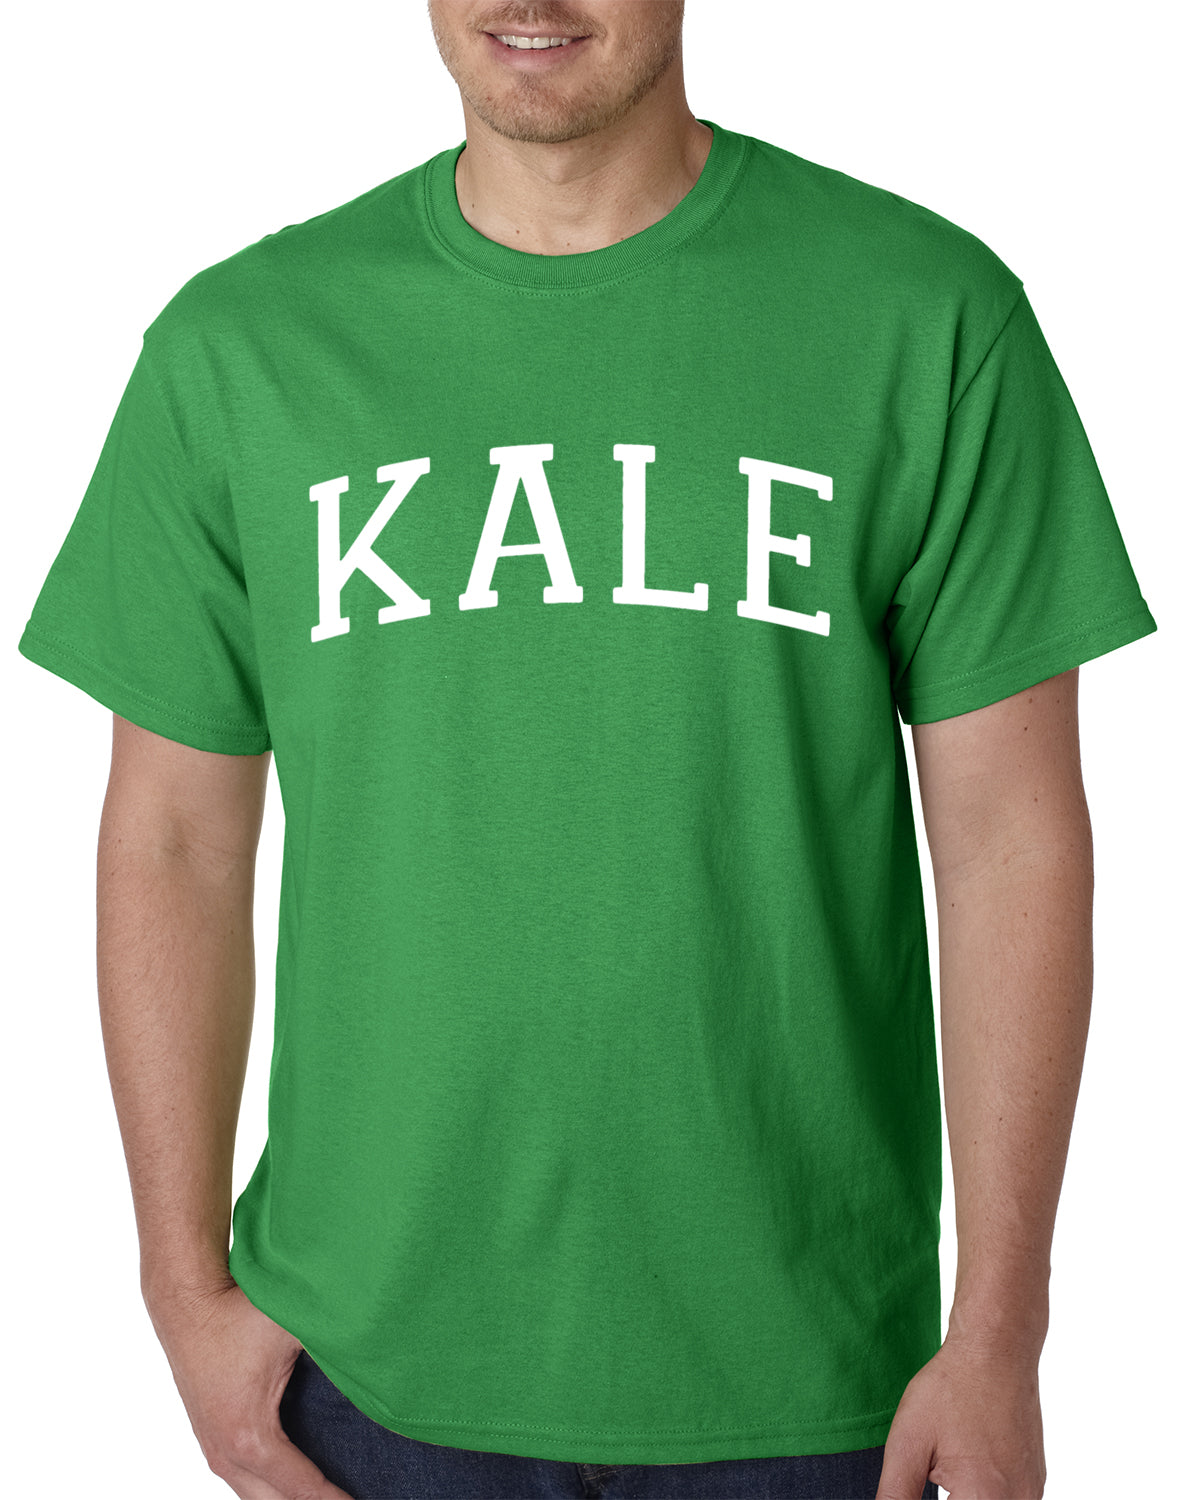 White Print Kale Mens T-shirt